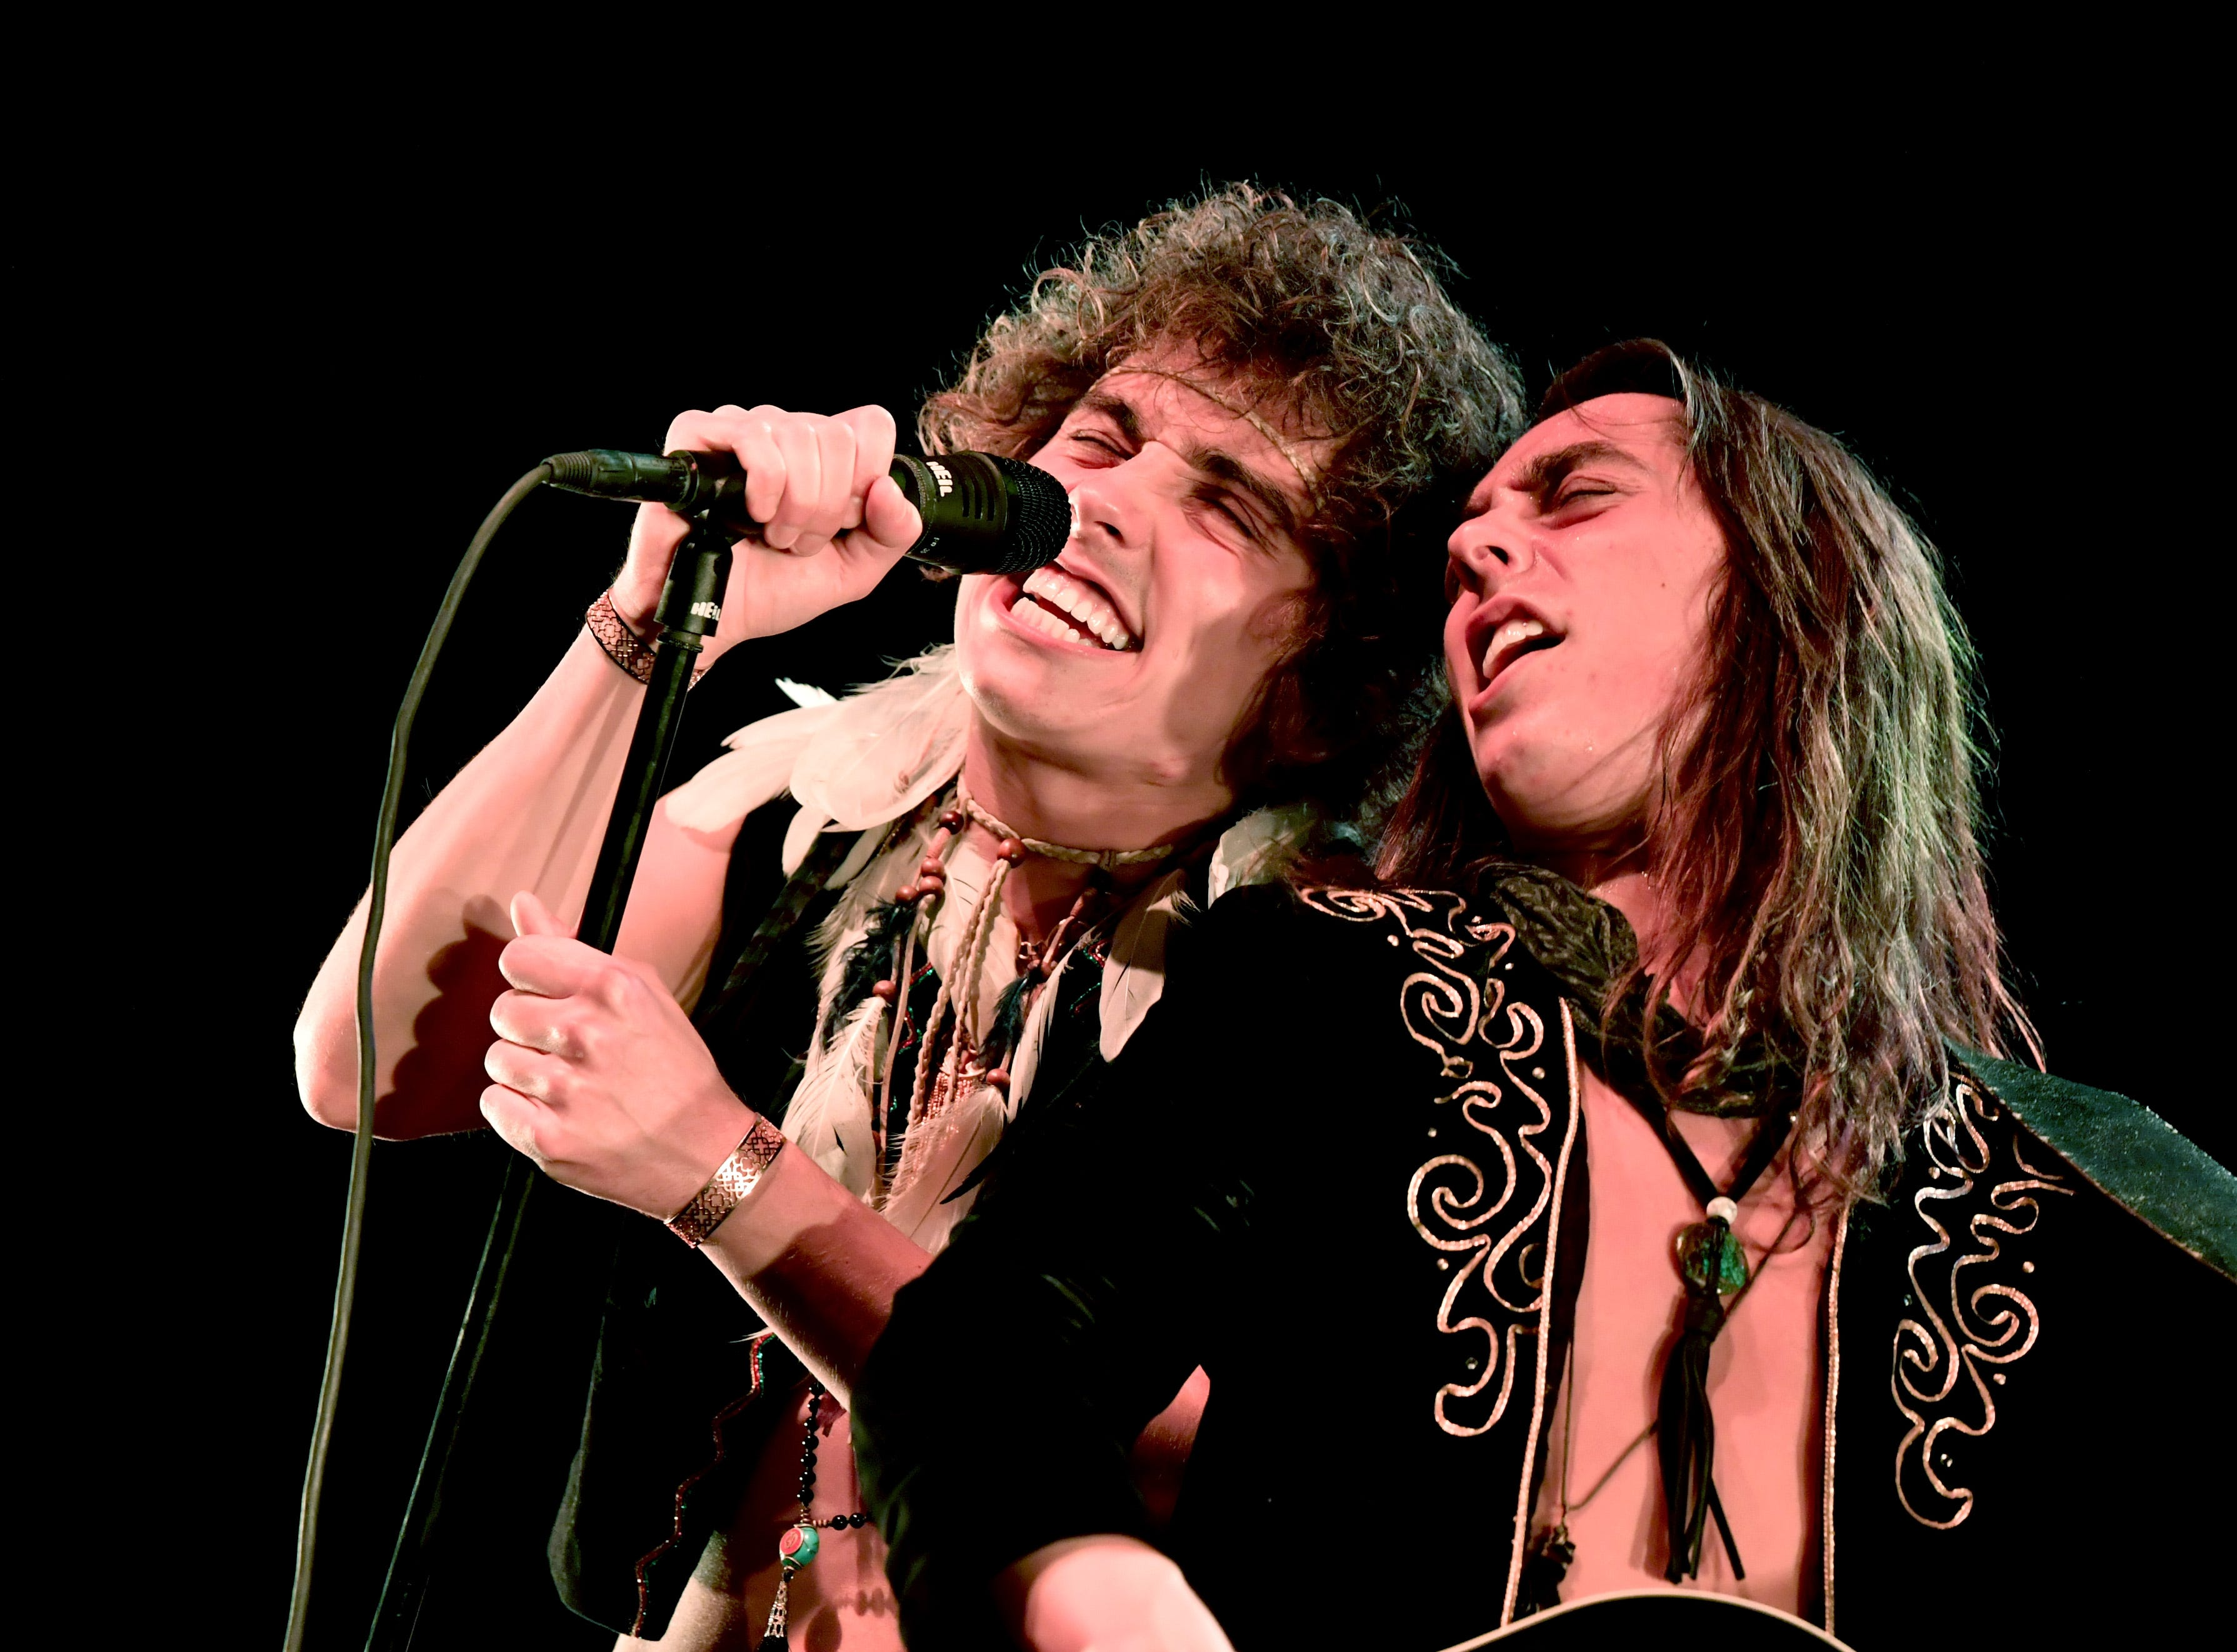 INGLEWOOD, CA - DECEMBER 08:  Josh Kiszka (L) and Jake Kiszka of the band Greta Van Fleet performs on stage during the KROQ Absolut Almost Acoustic Christmas at The Forum on December 8, 2018 in Inglewood, California.  (Photo by Emma McIntyre/Getty Images for KROQ/Entercom) ORG XMIT: 775265850 ORIG FILE ID: 1070249120